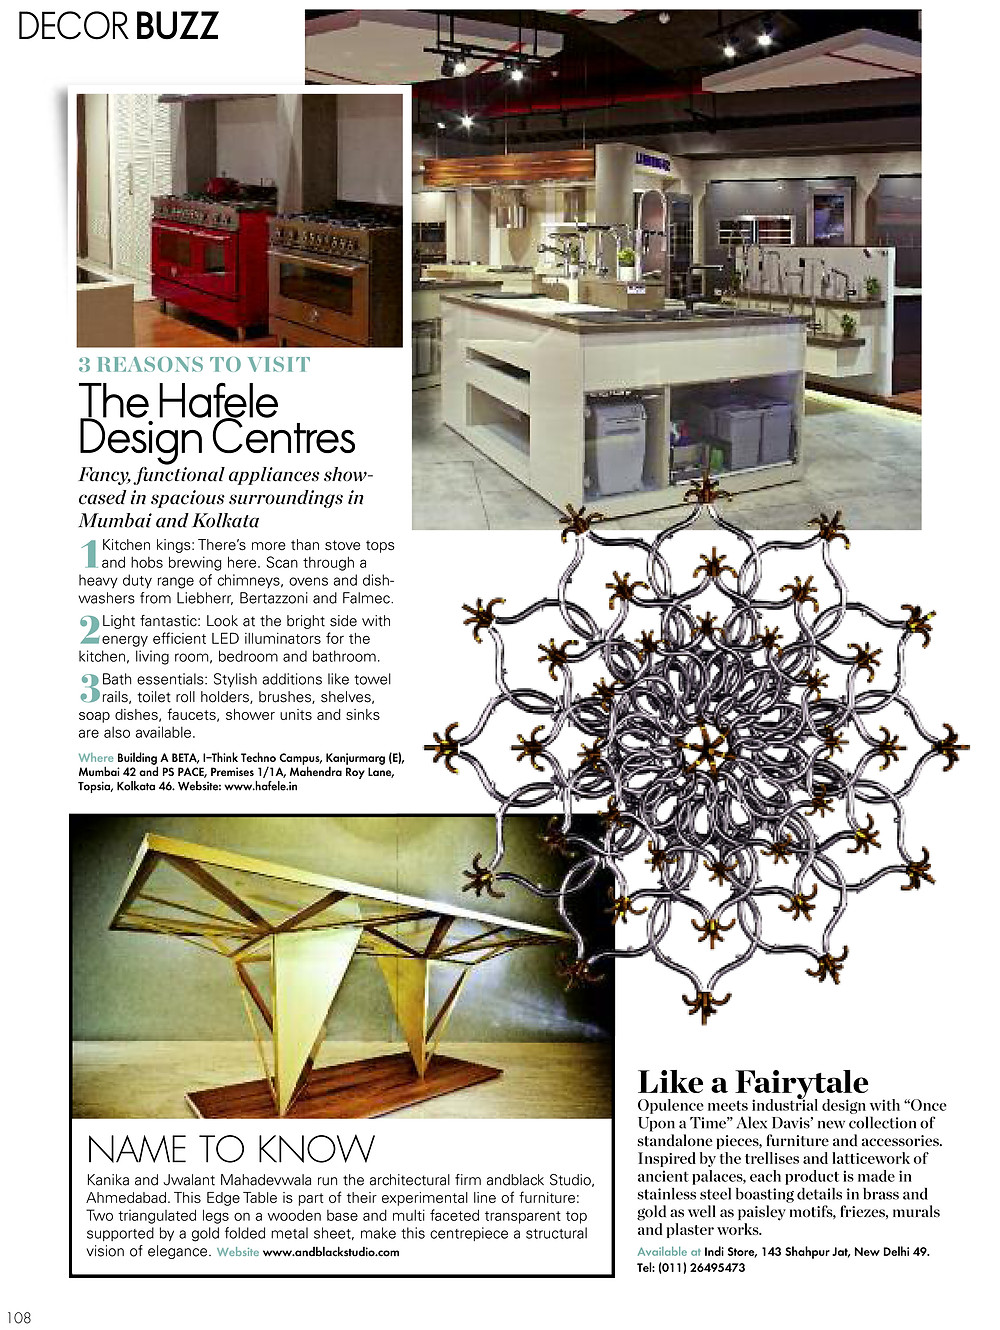 Local Buzz - Page 4 (1).jpg